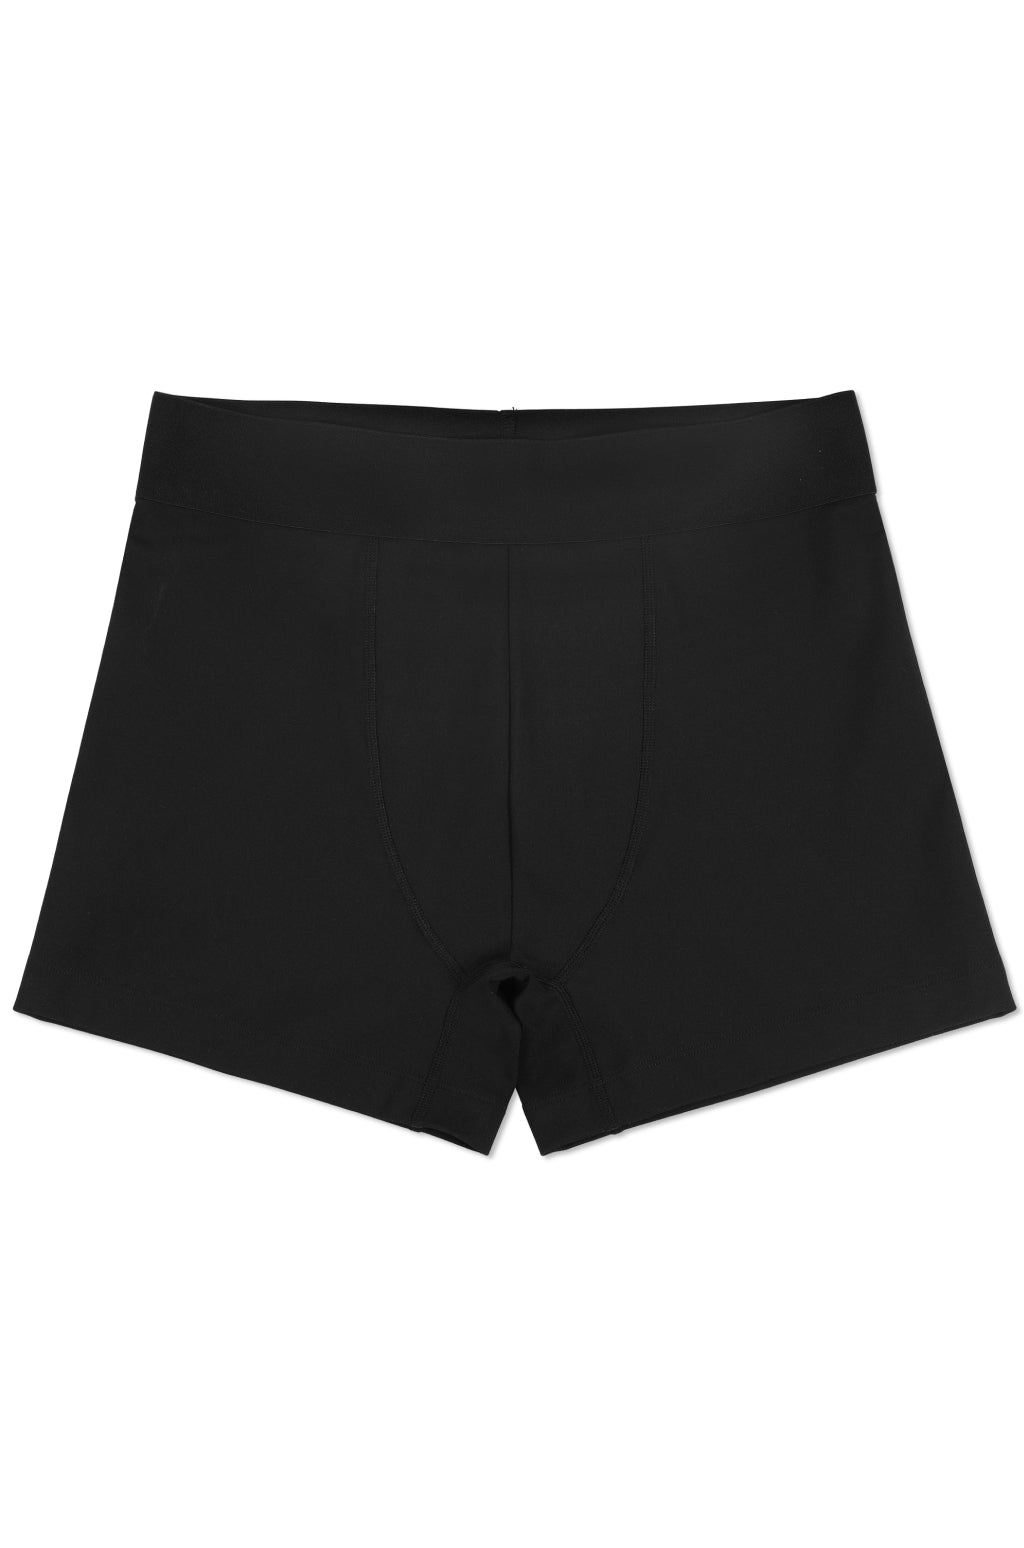 Packing Boxer Brief